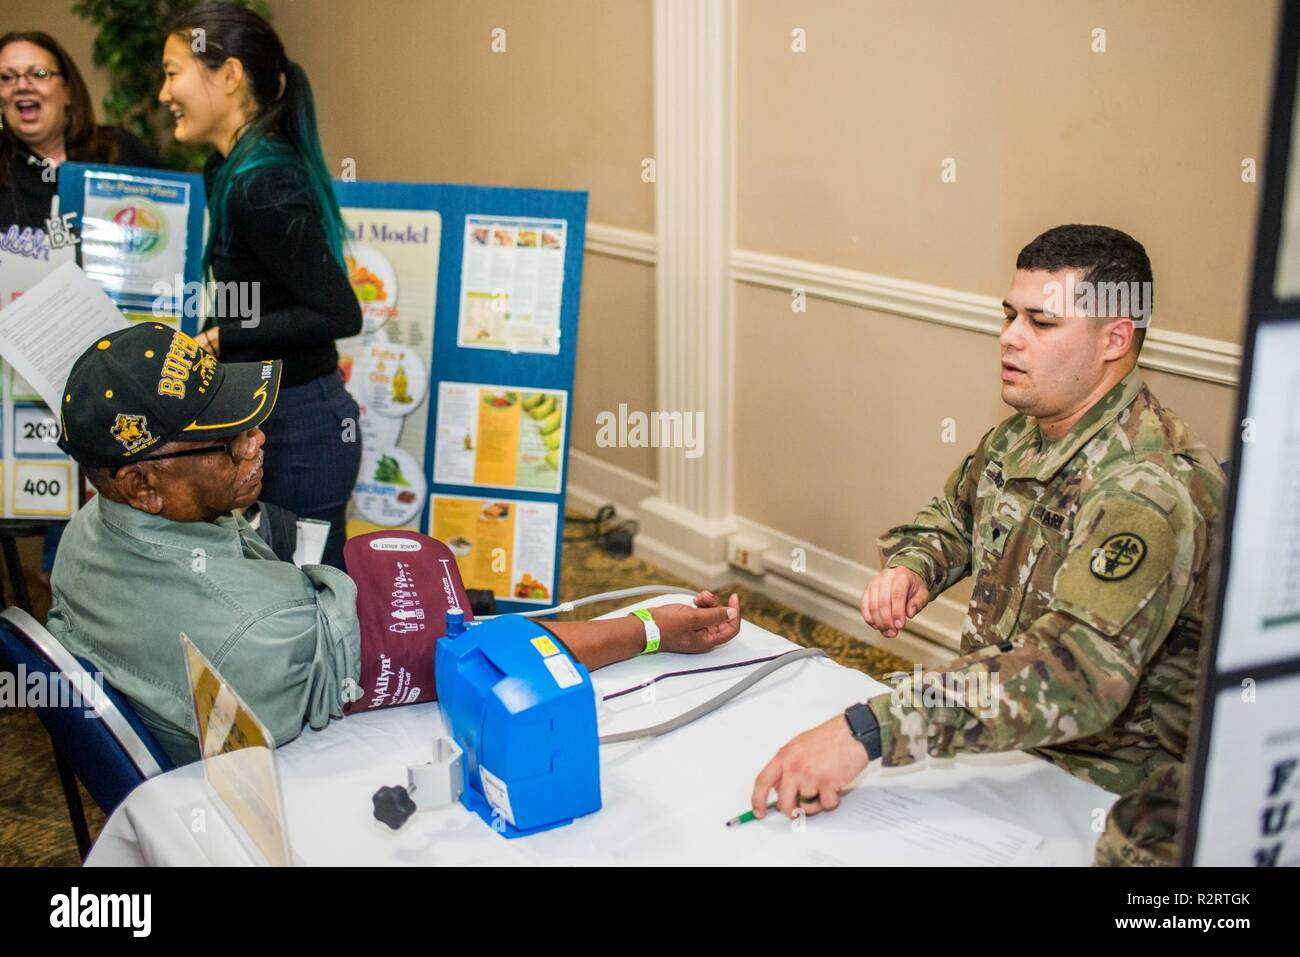 FORT BENNING, Ga. (Nov. 7, 2018) – Veterans of the U.S. military from Georgia and Alabama attended the annual Retiree Appreciation Day event Nov. 2 and the Benning Club at Fort Benning, Georgia. The event provides retirees and their Family members the information on policy updates, the opportunity to network with one another, the chance to renew ID cards, receive medical checkups, and more. - Stock Image